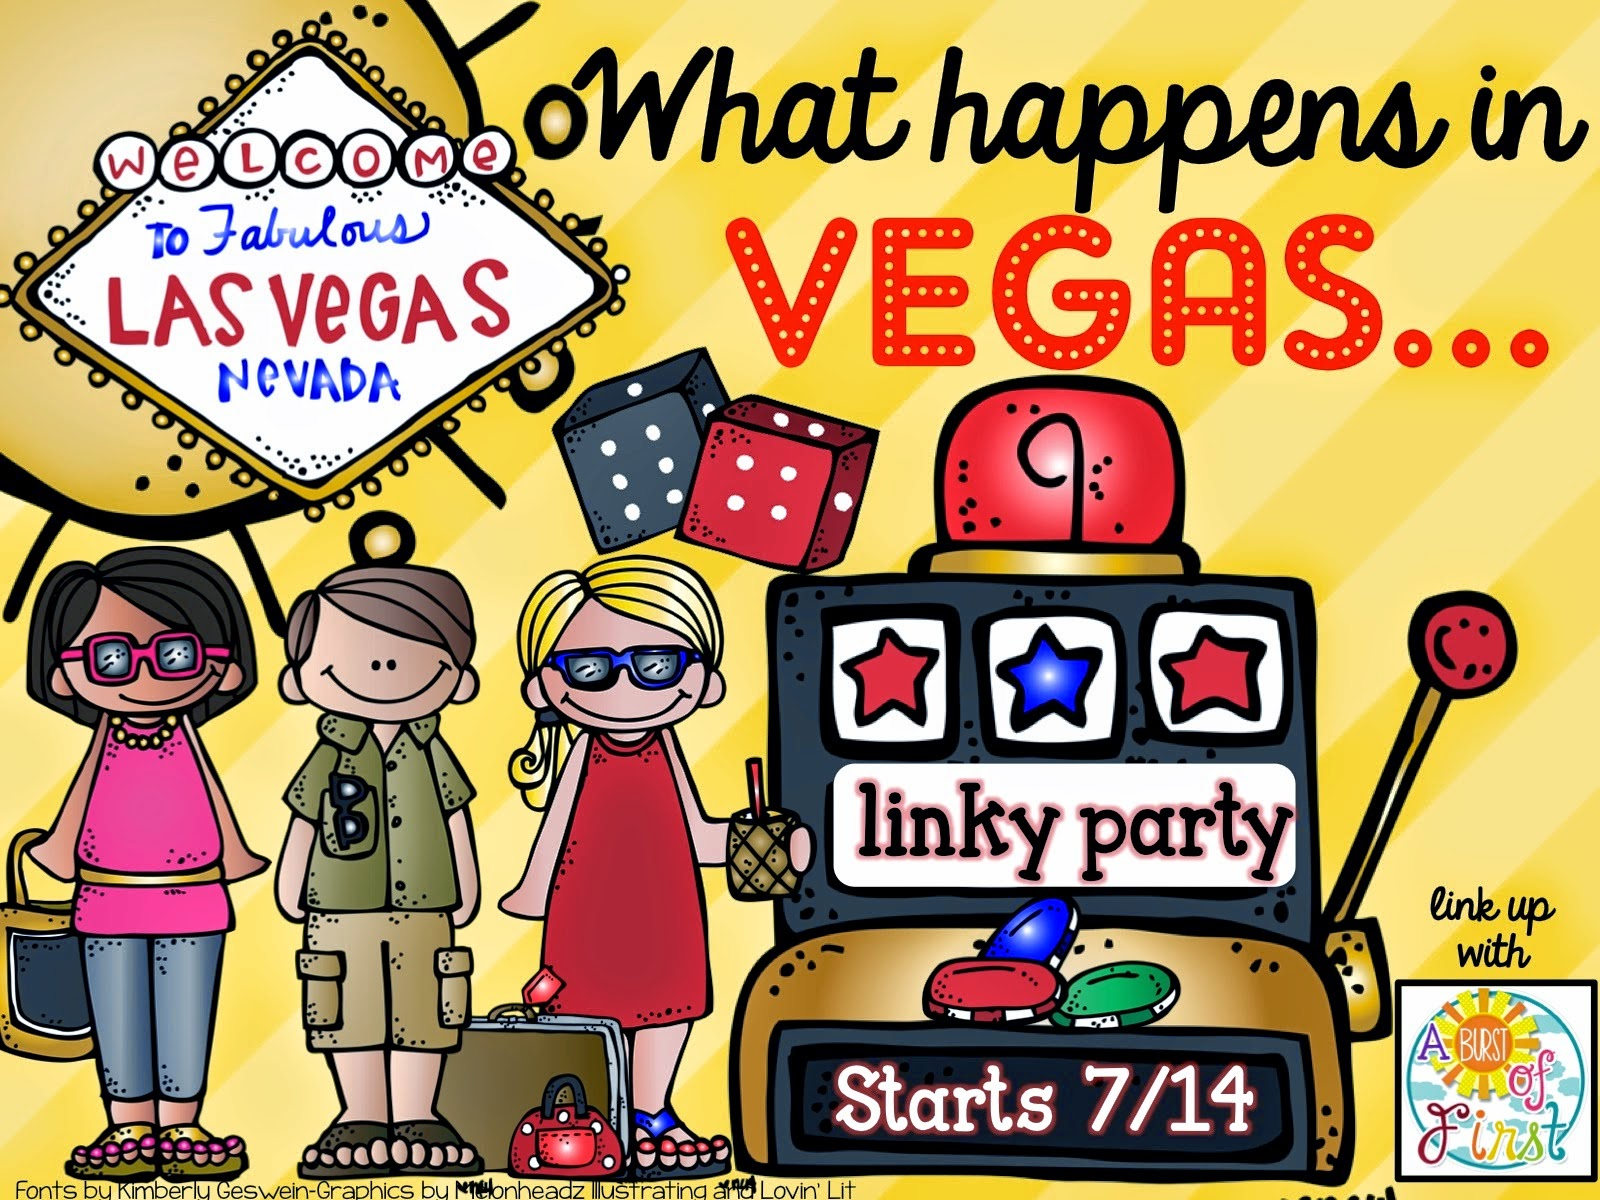 http://aburstoffirst.blogspot.com/2014/07/its-vegas-baby.html?showComment=1405327097230#c5884140792191068100